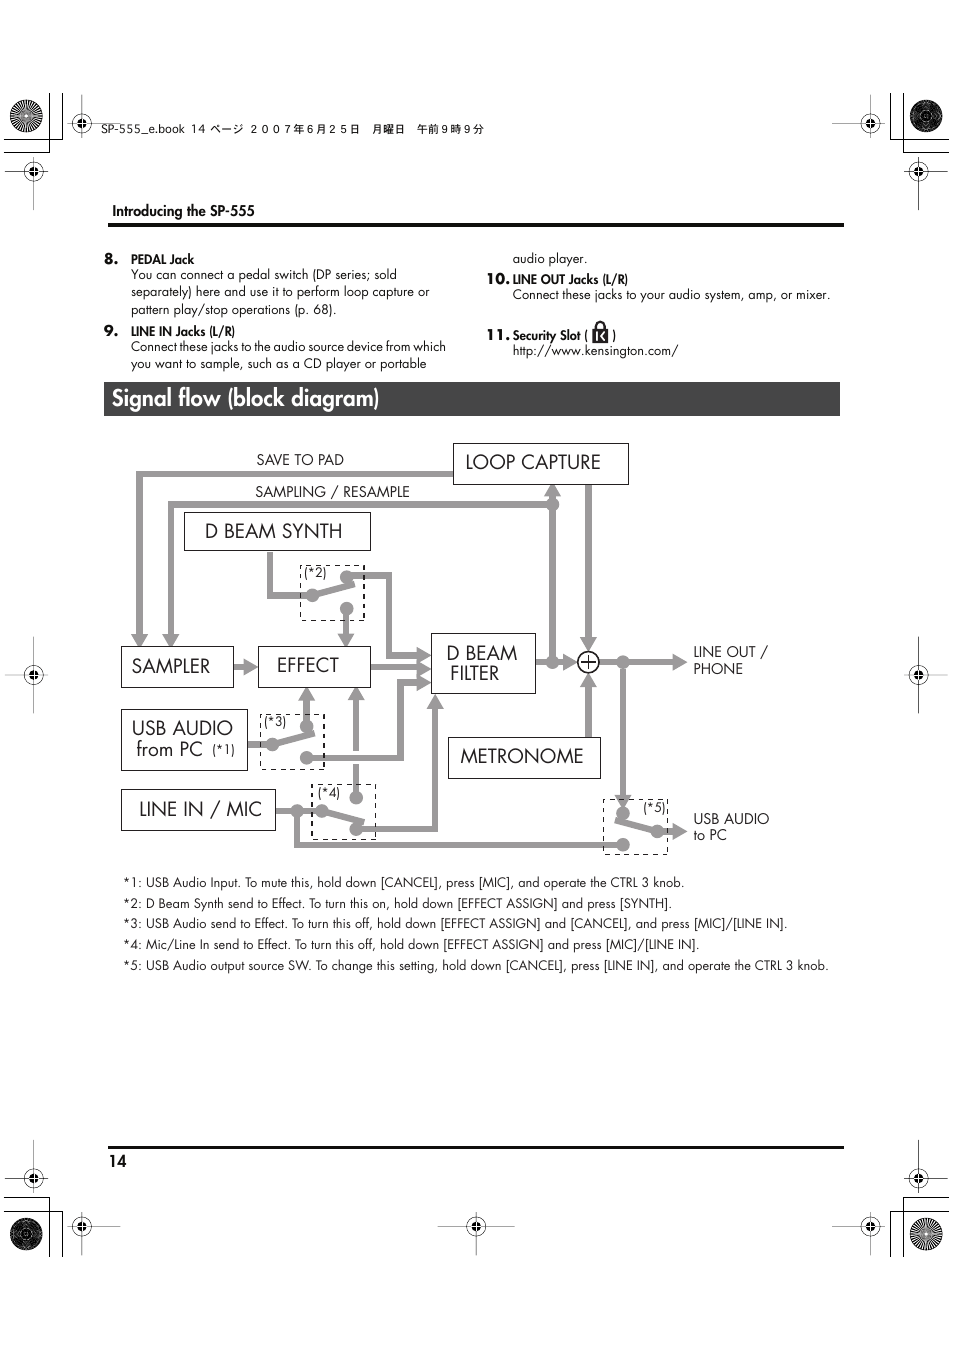 hight resolution of signal flow block diagram d beam synth effect usb audio from pc line in mic metronome d beam filter roland sp 555 user manual page 14 80